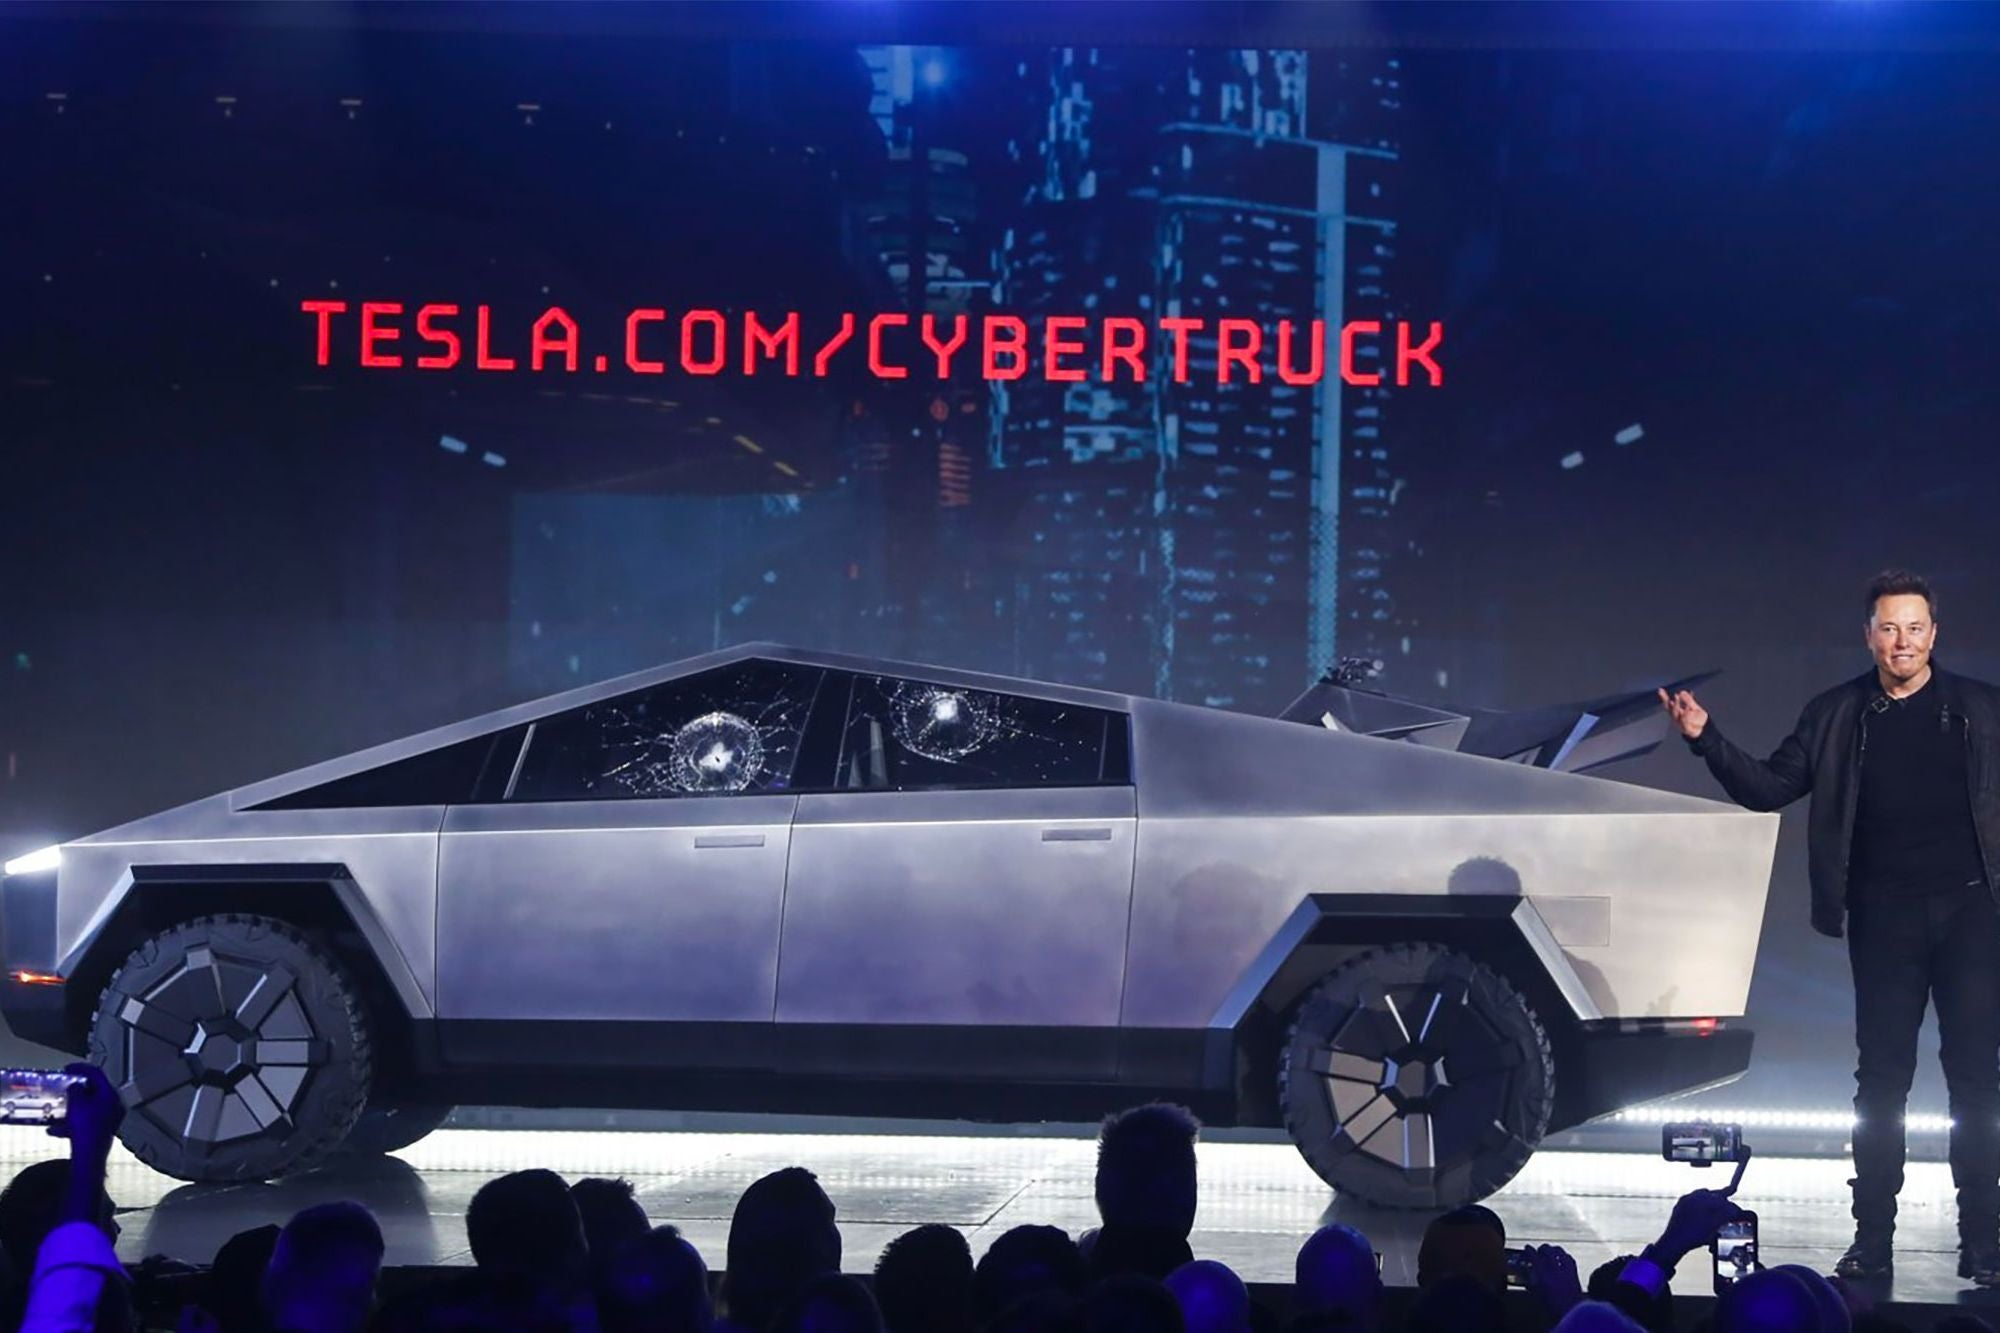 Elon Musk is 'Scouting' New U.S. Locations for Cybertruck, Model Y Production